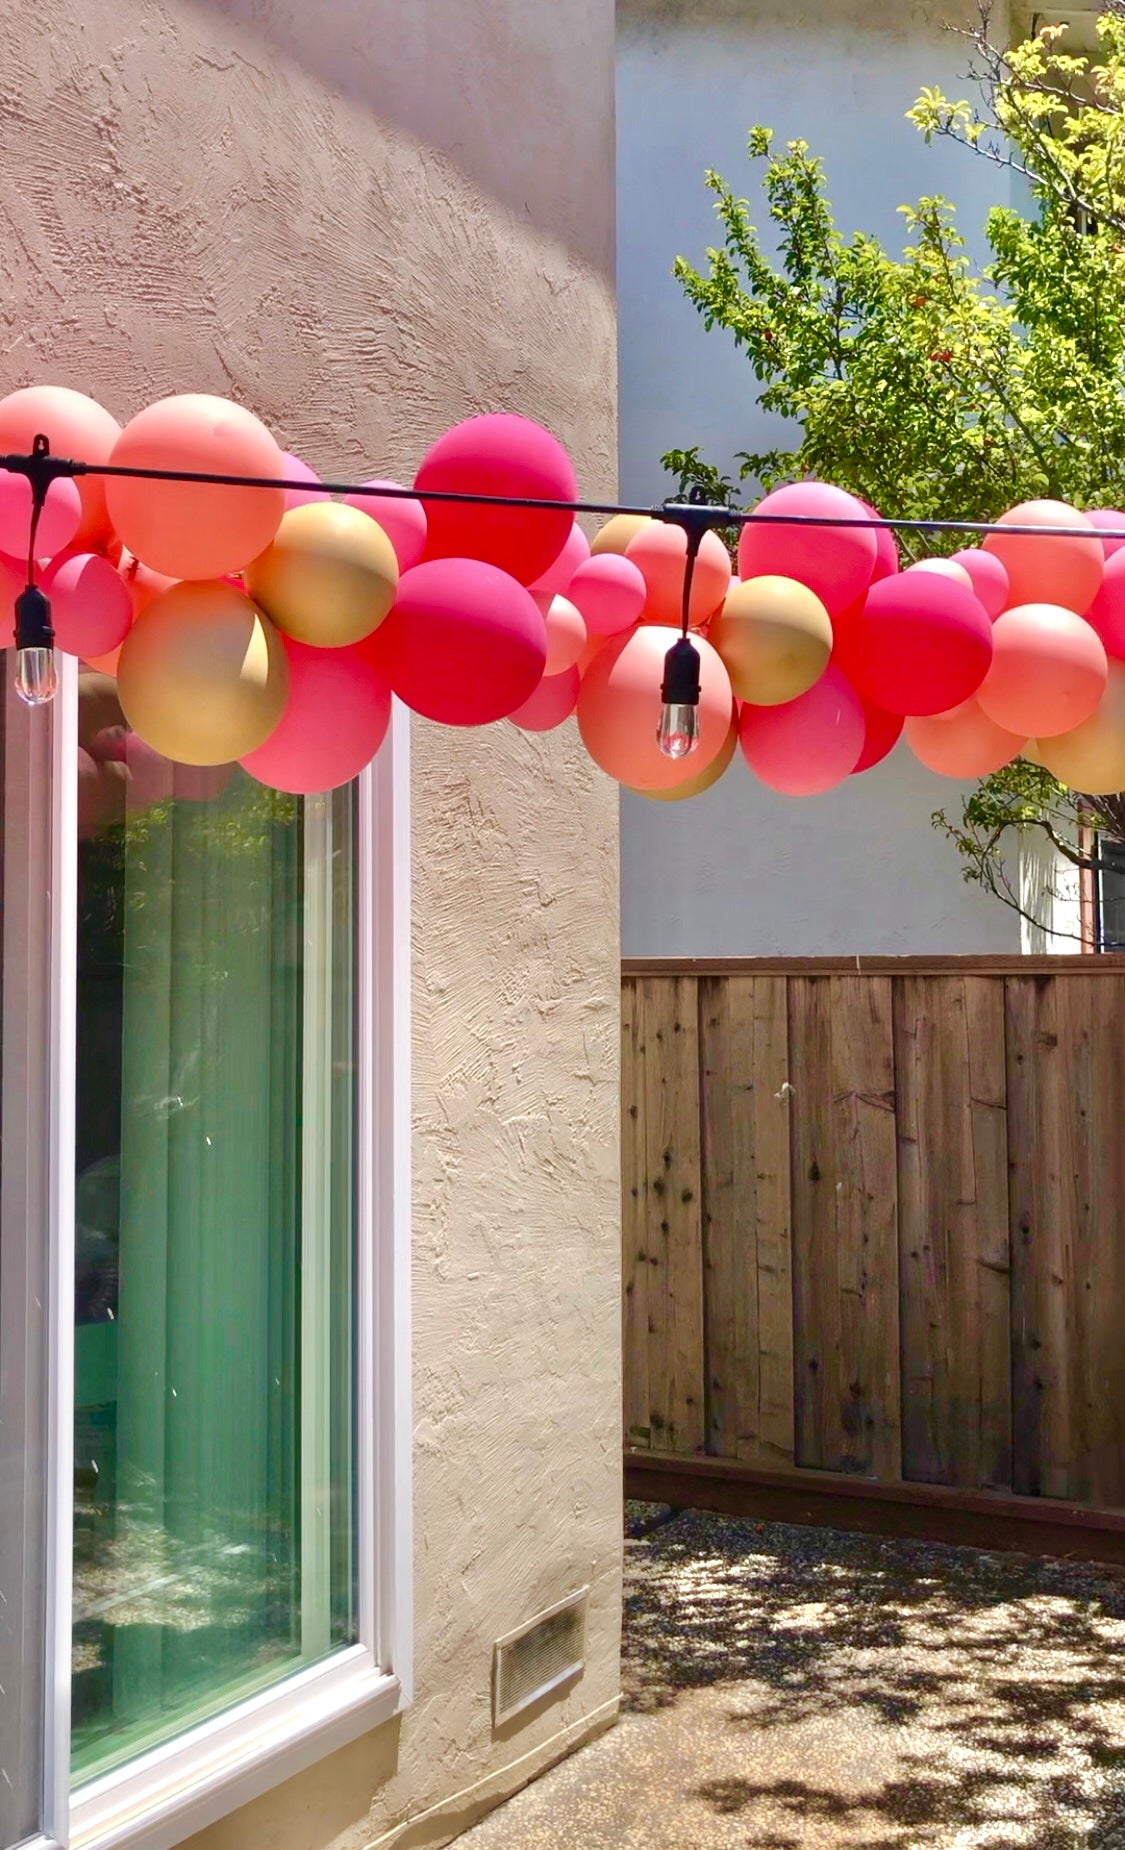 Balloon Garland for Backyard Birthday Decorations - Outdoor Movie Night - Backyard Movie Night Decorations - Pretty Collected